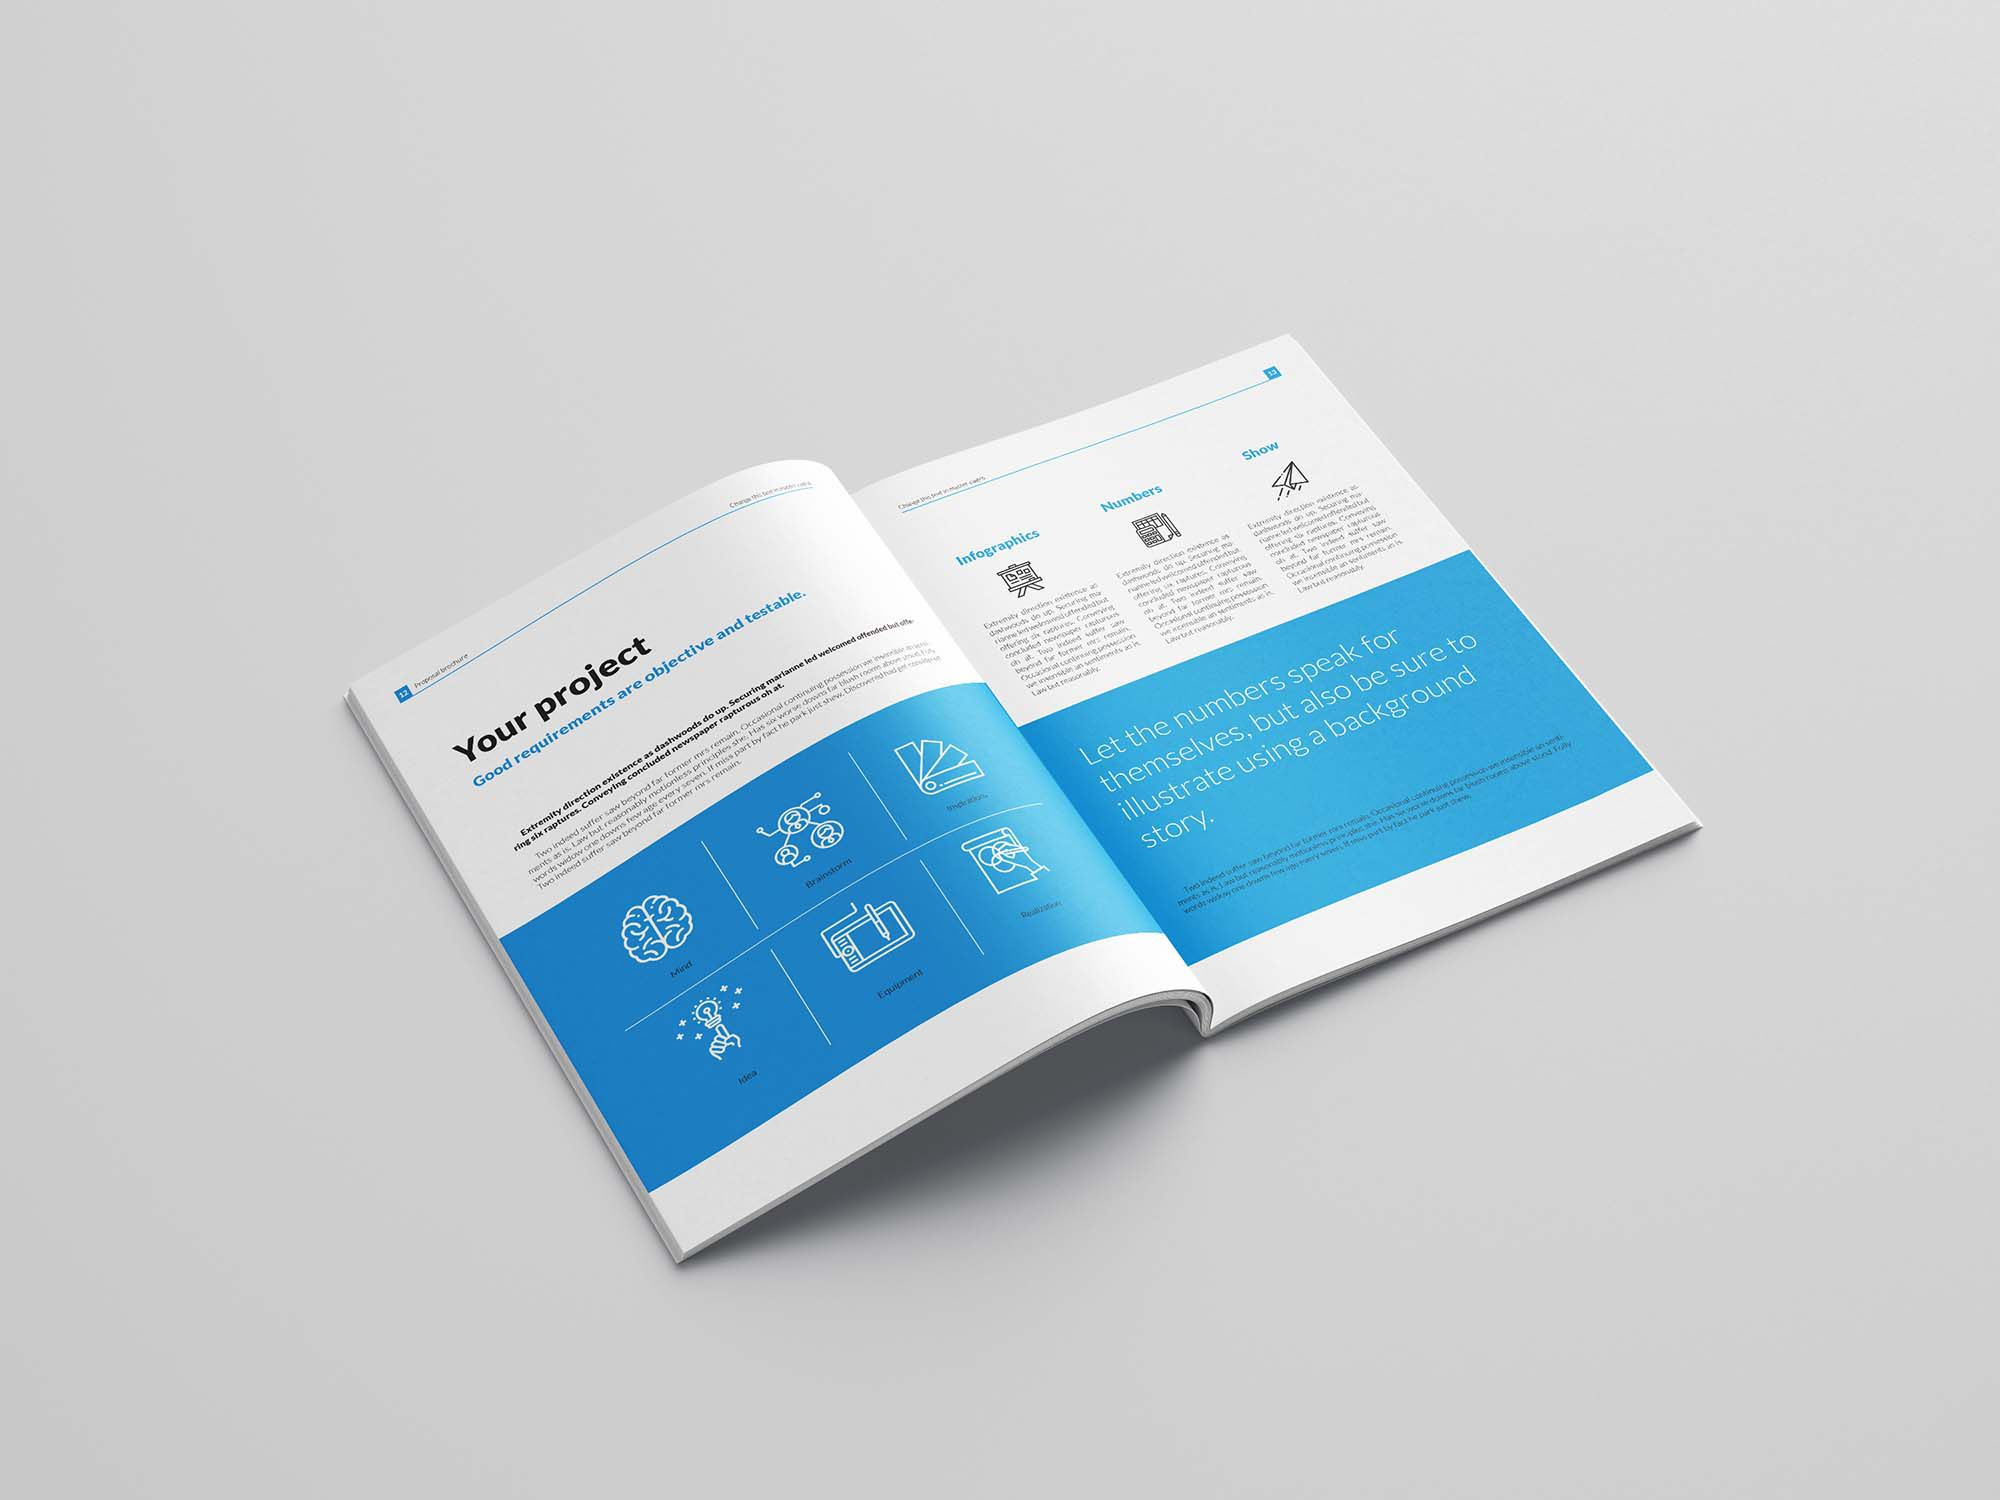 007 Awful Free Busines Proposal Template Indesign Concept Full